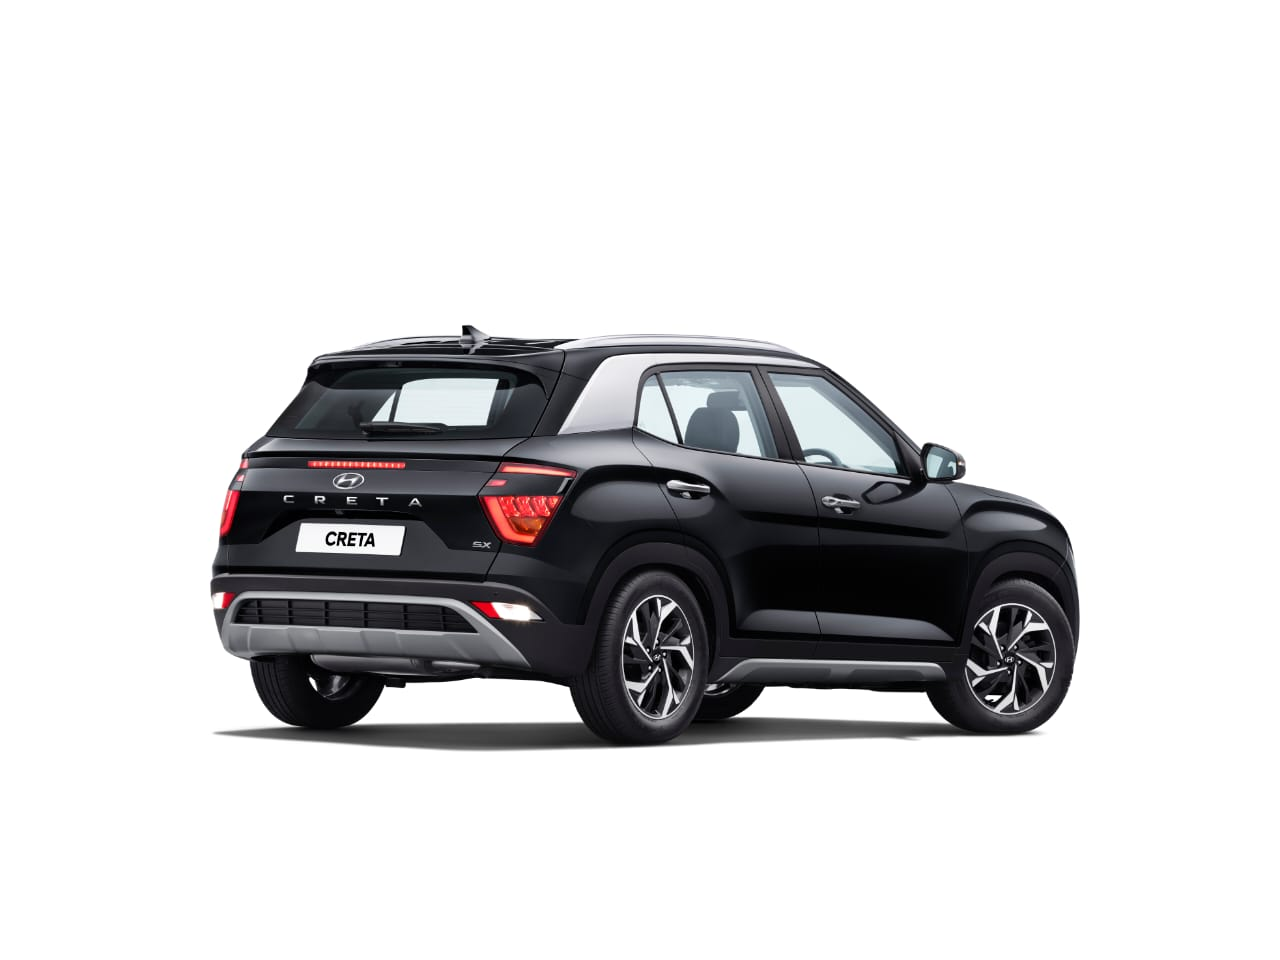 <p><strong>Hyundai India - Auto Expo 2020, Day 2:</strong></p>  <p>The rear LED stop lamp placed in the centre above the&nbsp;Hyundai Creta logo is bound to draw attention.</p>